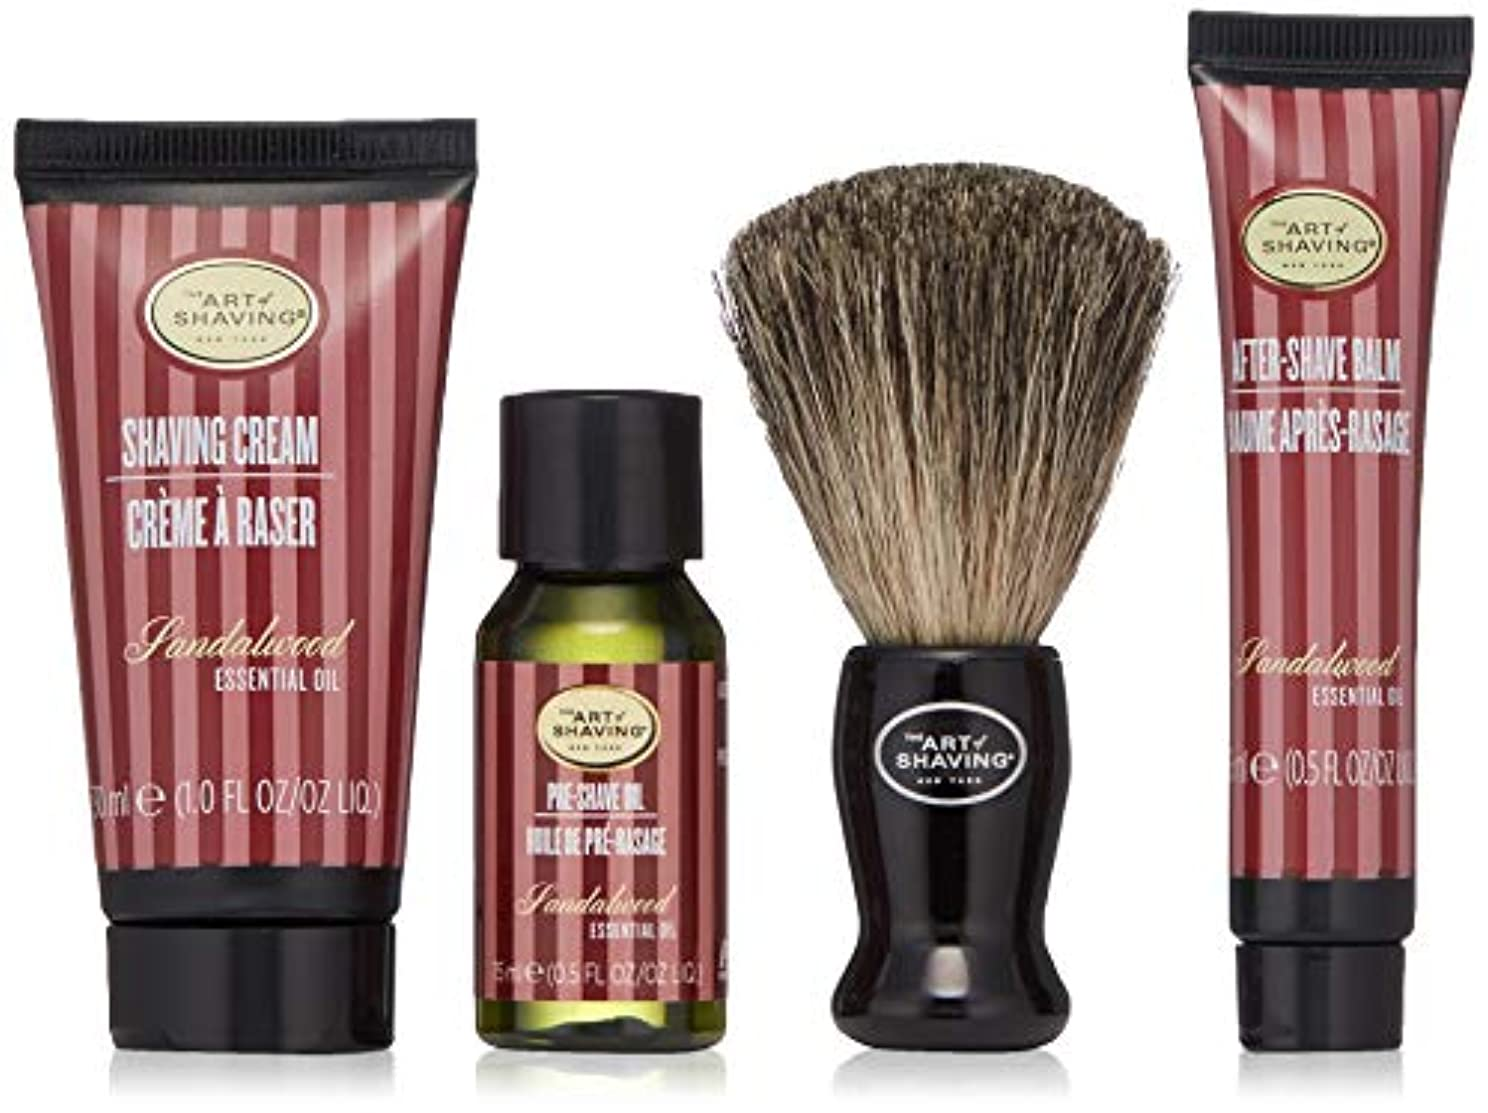 キャンバス重さひいきにするアートオブシェービング Starter Kit - Sandalwood: Pre Shave Oil + Shaving Cream + After Shave Balm + Brush + Bag 4pcs + 1Bag並行輸入品